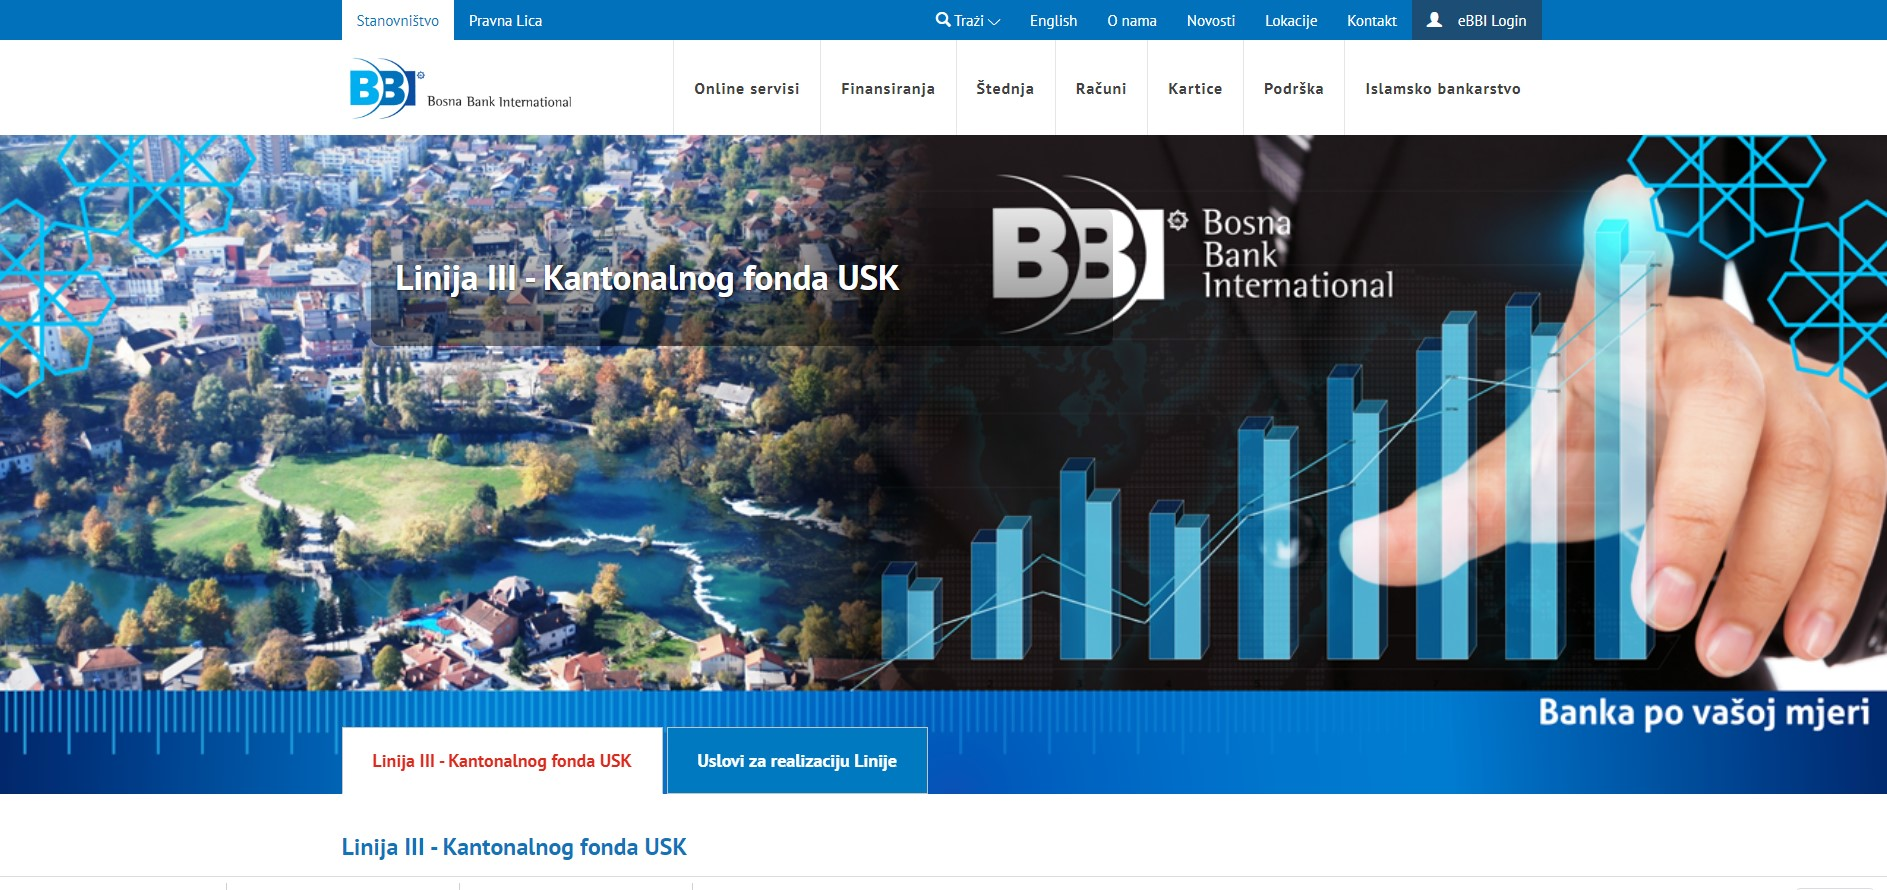 III Linija finansiranja -Bosna Bank International